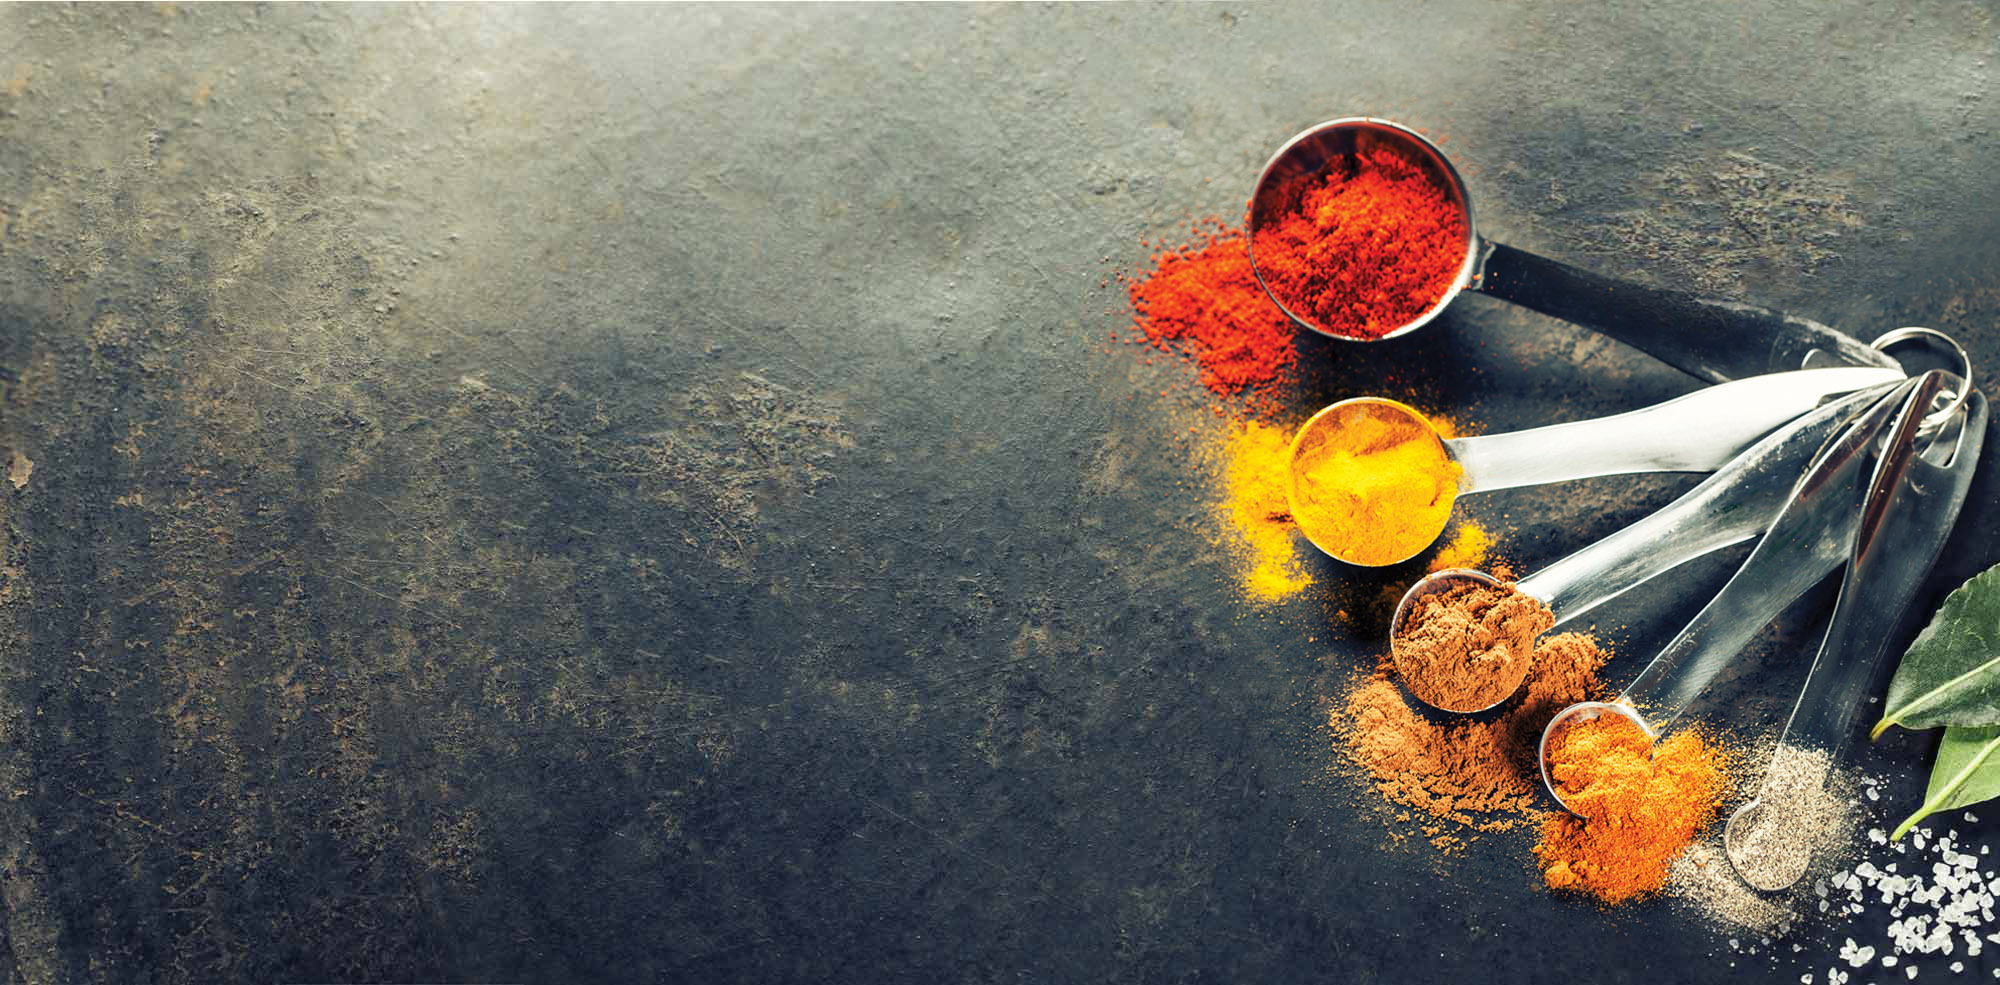 Flayco : Your Premier Source for Seasoning Blends, Spices, Flavors, Food Colors, Juices, Sauces & More!